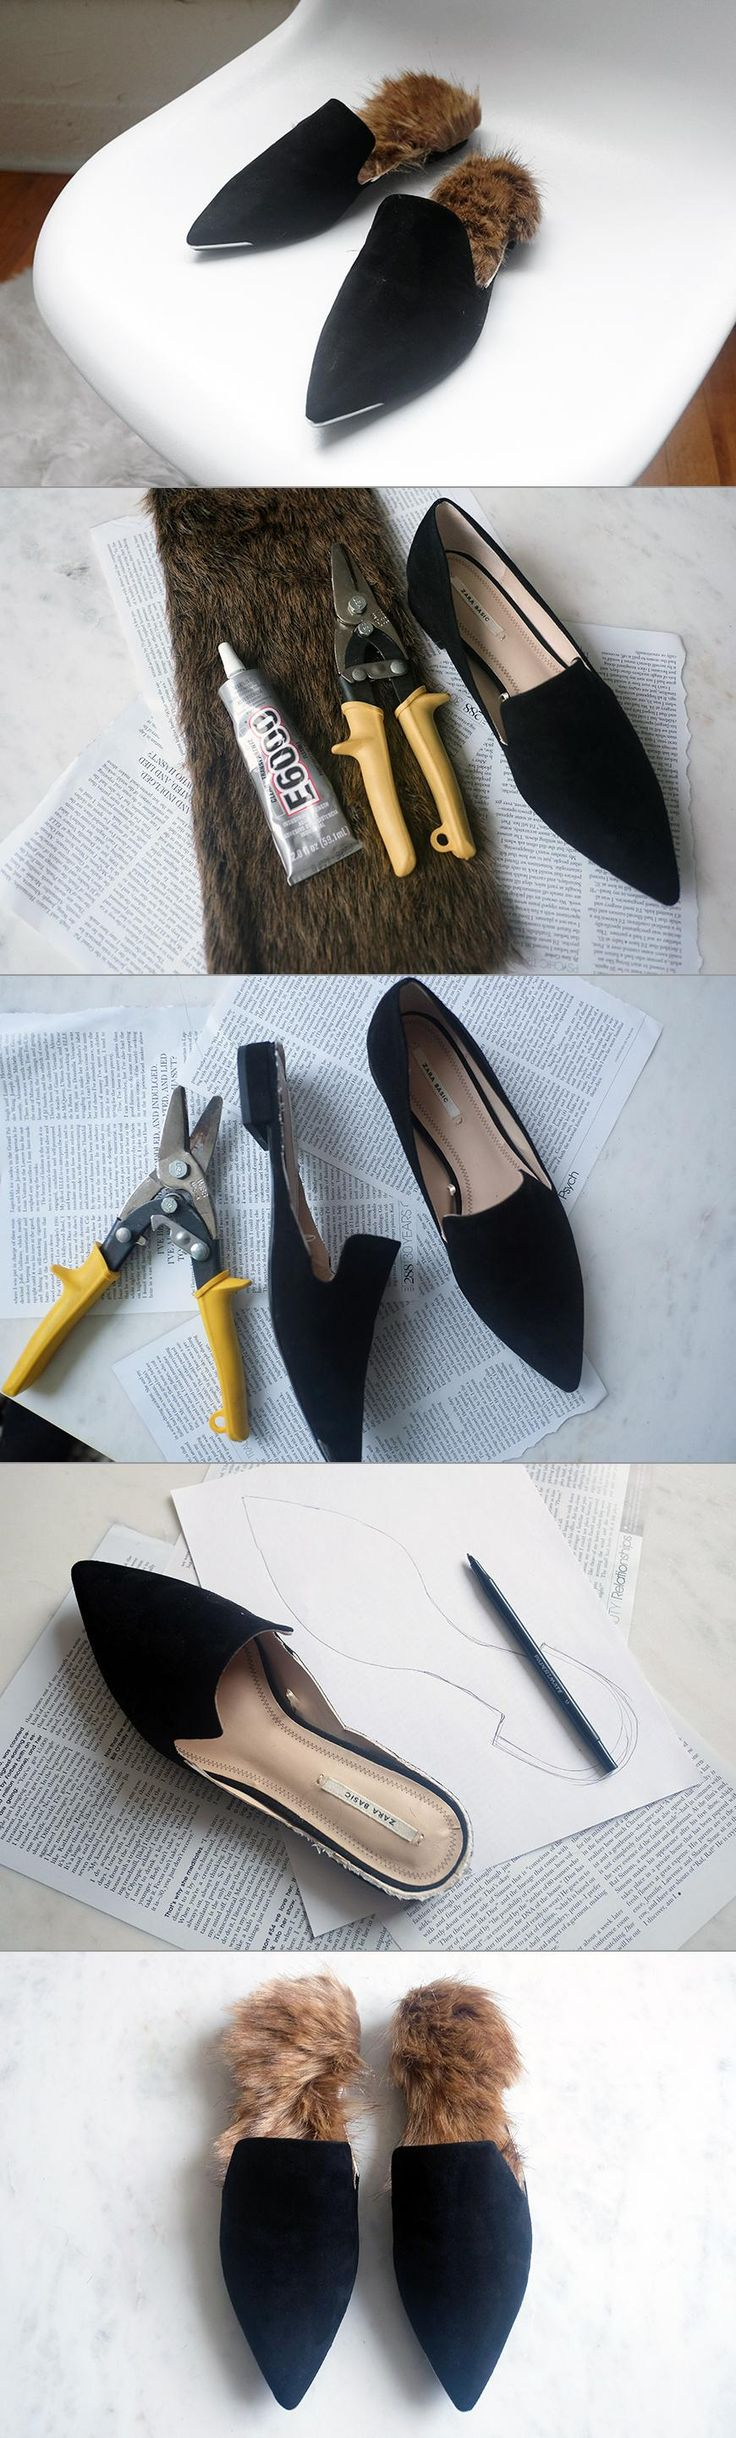 DIY Fur Slip-Ons - When I spotted the Gucci fur-lined loafers on the Fall 2015 runway show, I was immediately obsessed. They are so chic, and the fur contrast gives them a playful touch. Unfortunately, these beauties also come with a very high price tag. For trendier pieces like these, I love to turn to DIY so I don't have to break the bank. Click over to eBay to see how to make these in four simple steps.